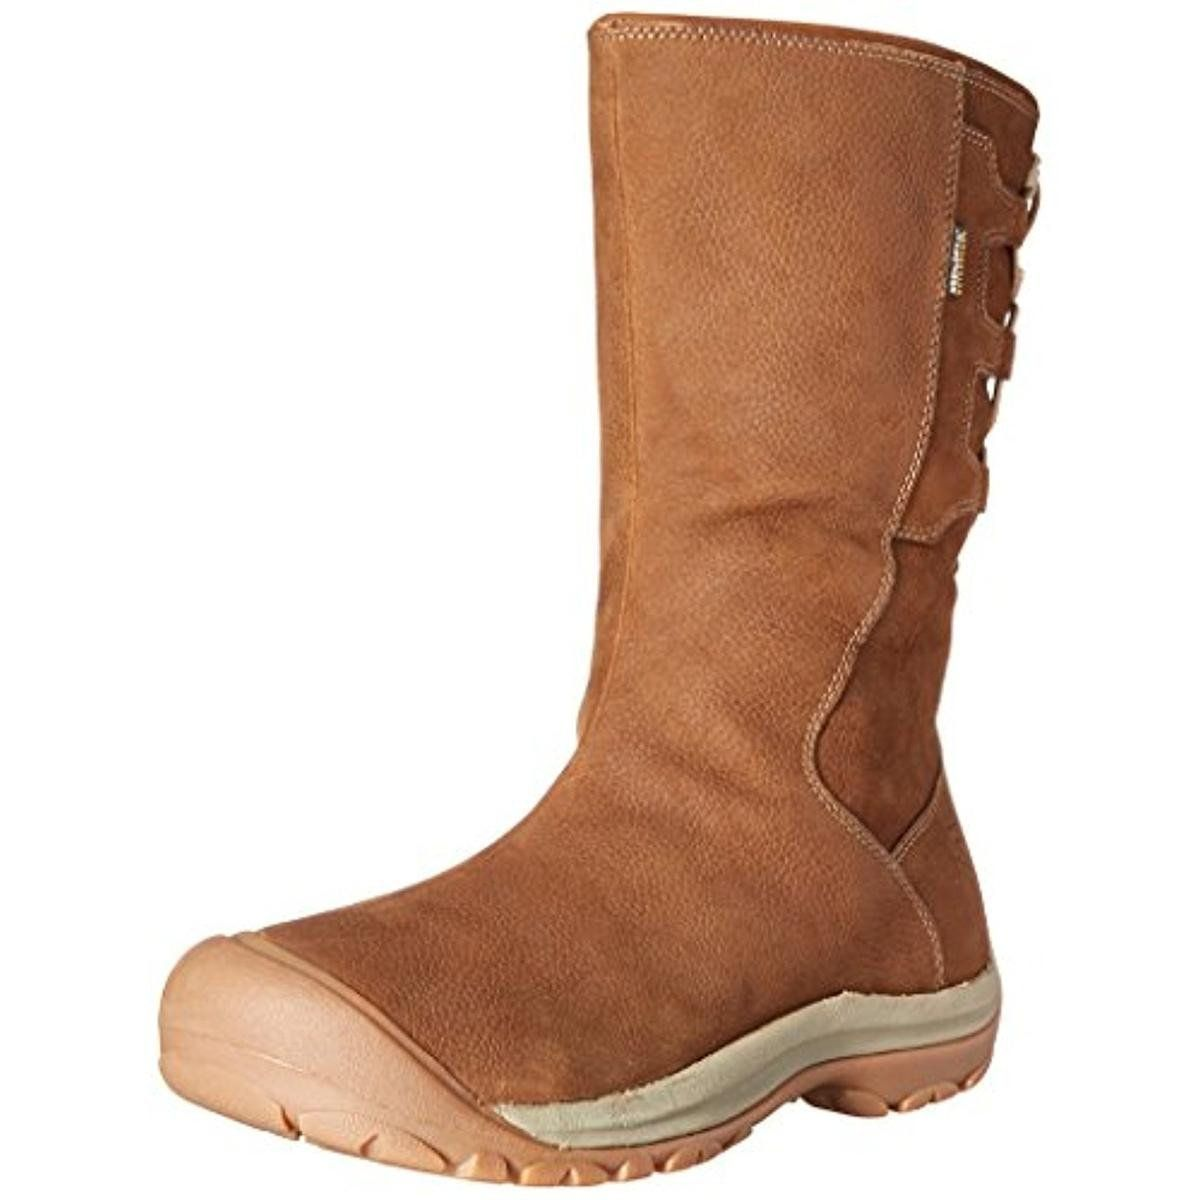 Keen Womens Leather Waterproof Mid-Calf Boots